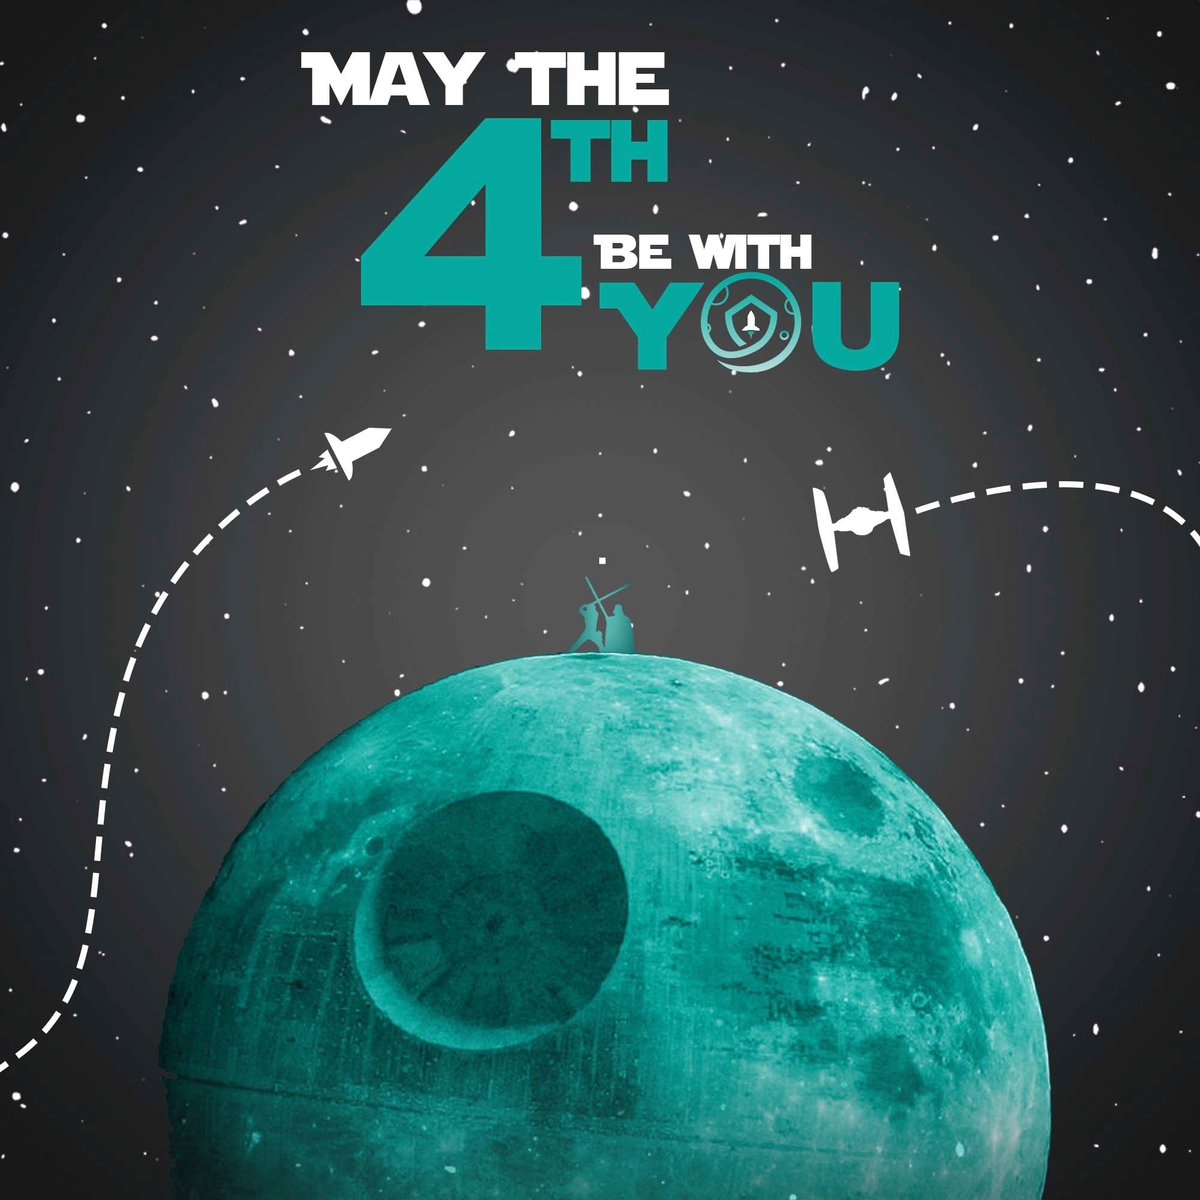 RT @safemoon: From the #SAFEMOON team #MayThe4thBeWithYou https://t.co/qbrMe6fqwJ